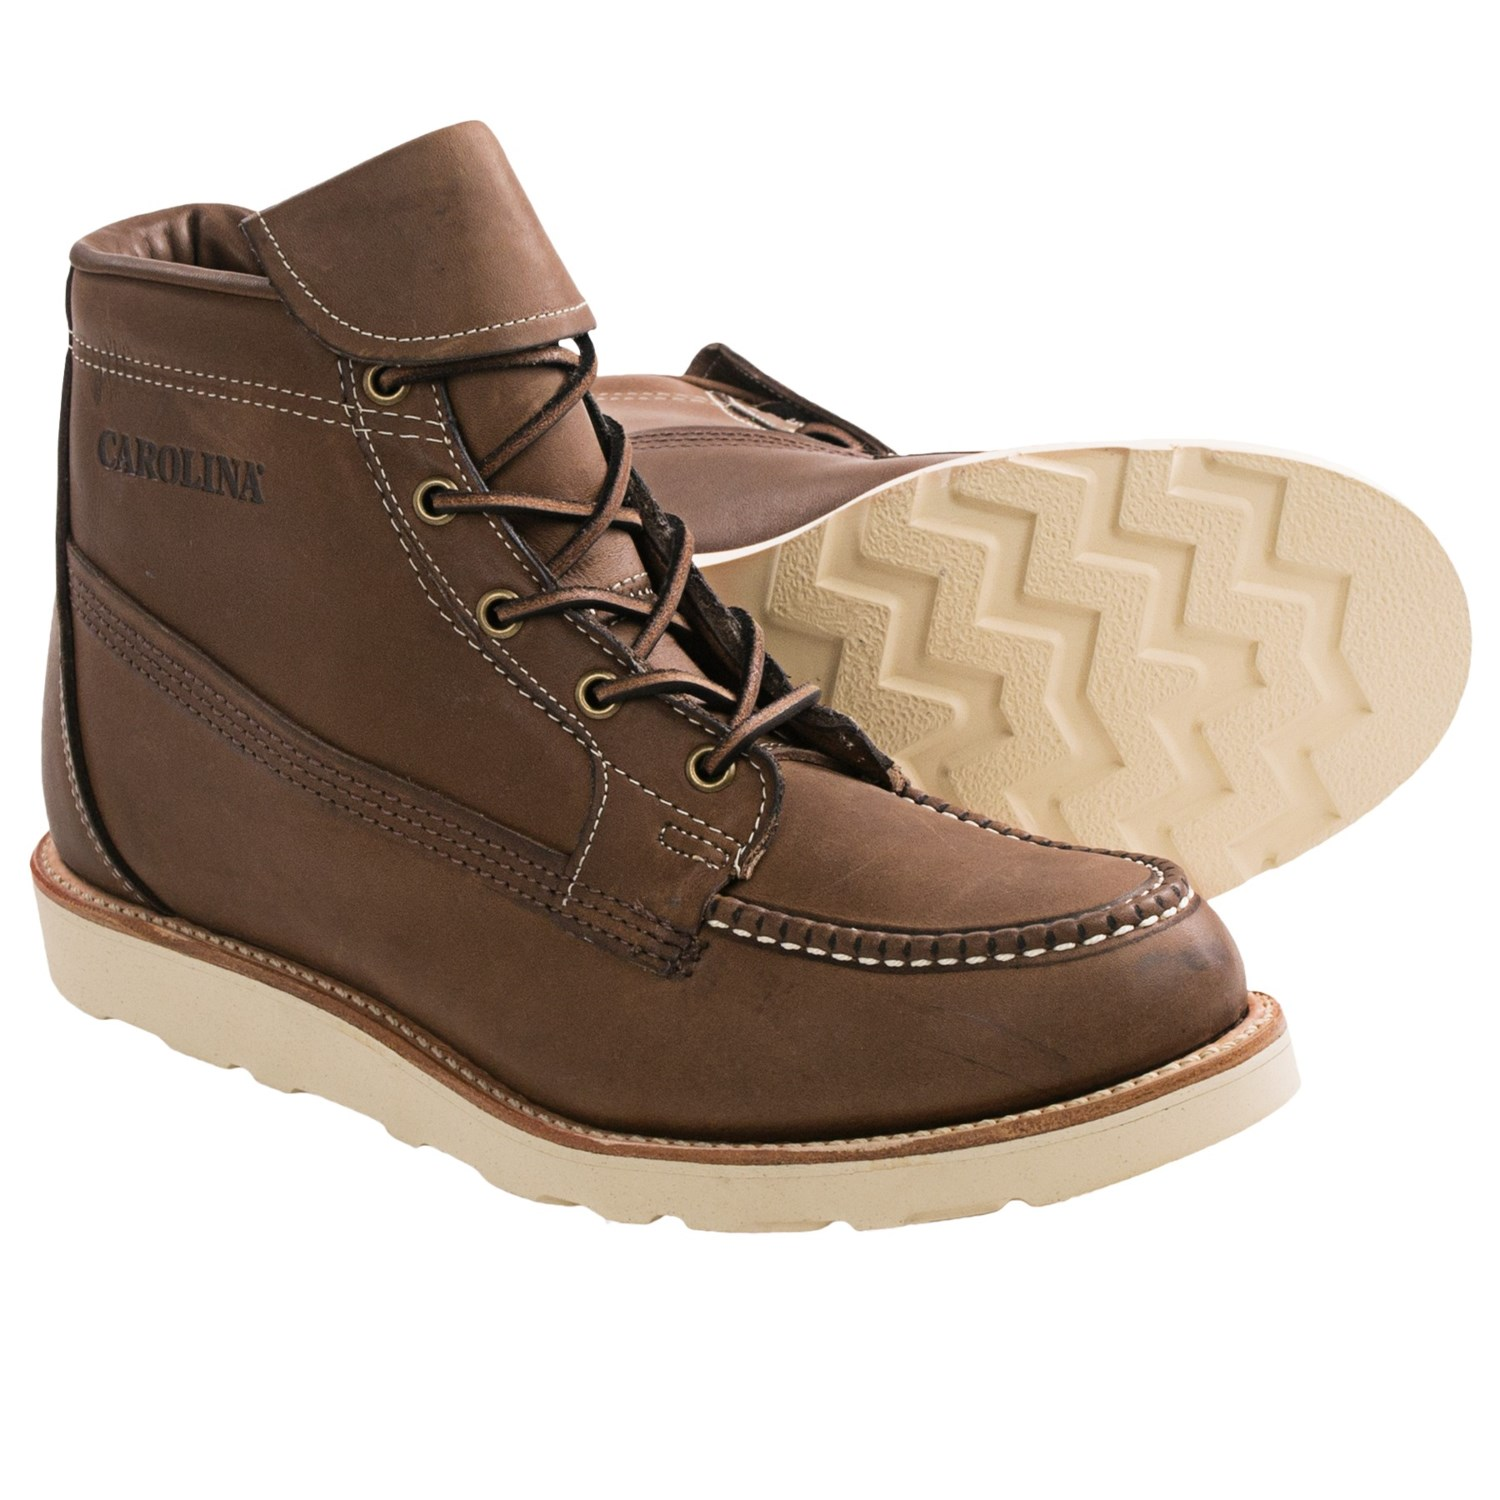 carolina shoe grain leather work boots for